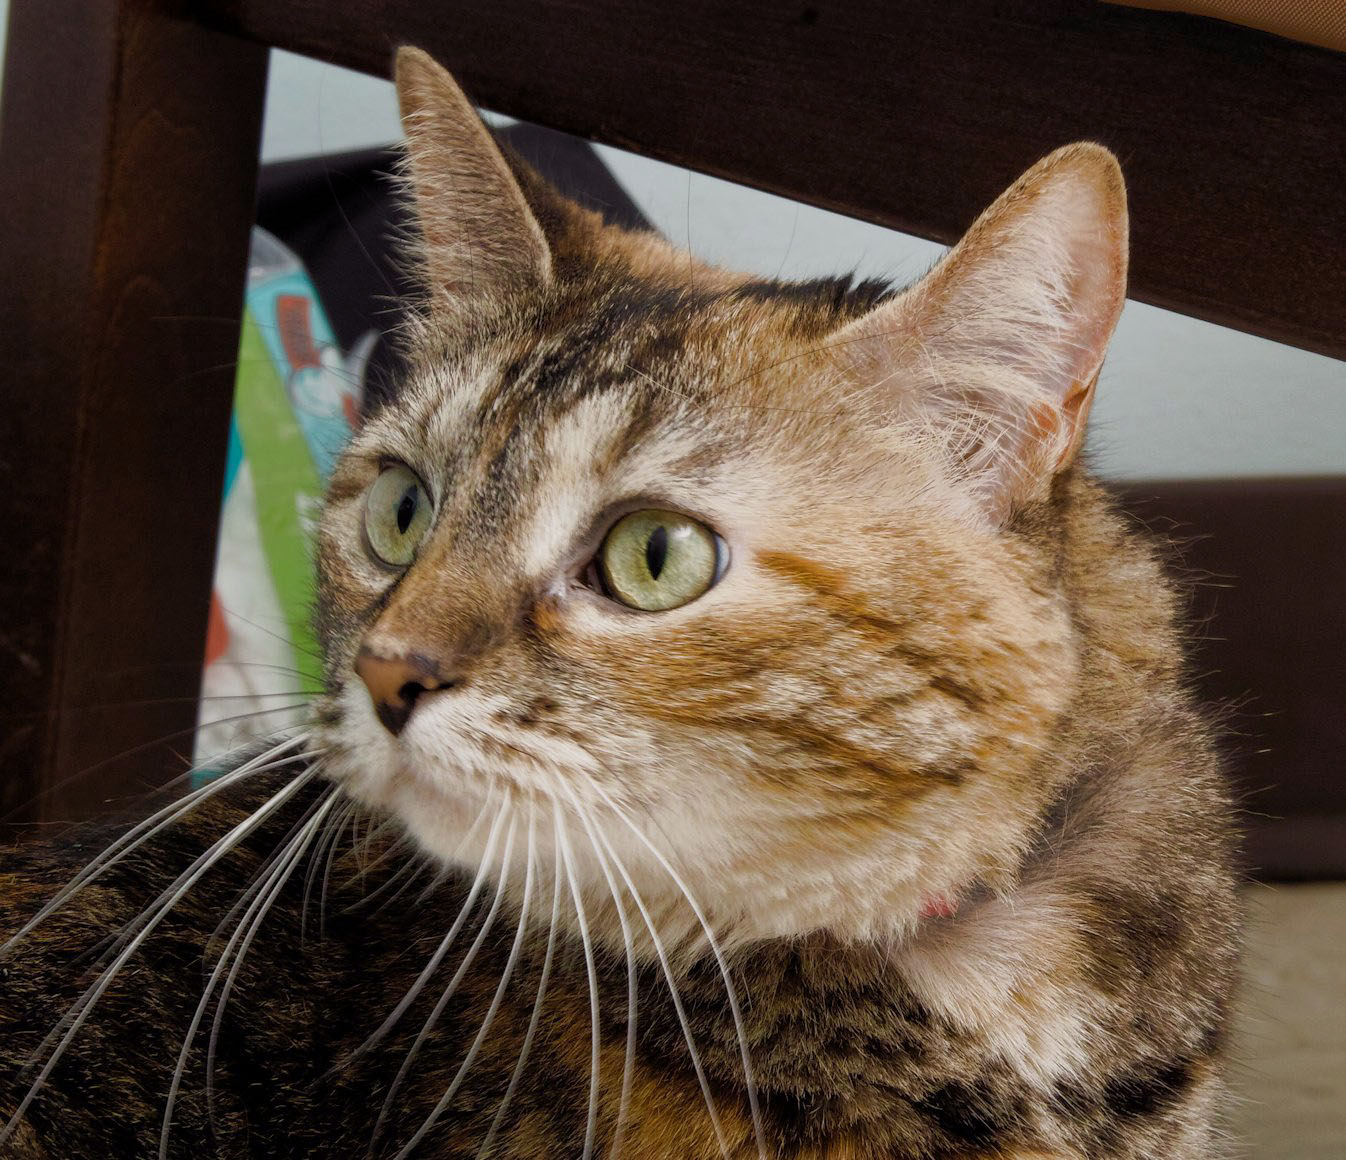 Gizzyis asenior gal who is looking to spend the best years of her life with you! She is beautiful 12-year-old brown tabby with striking green eyes.She is looking for a home that preferably doesn't have a dogsince she doesn't get along with them well.